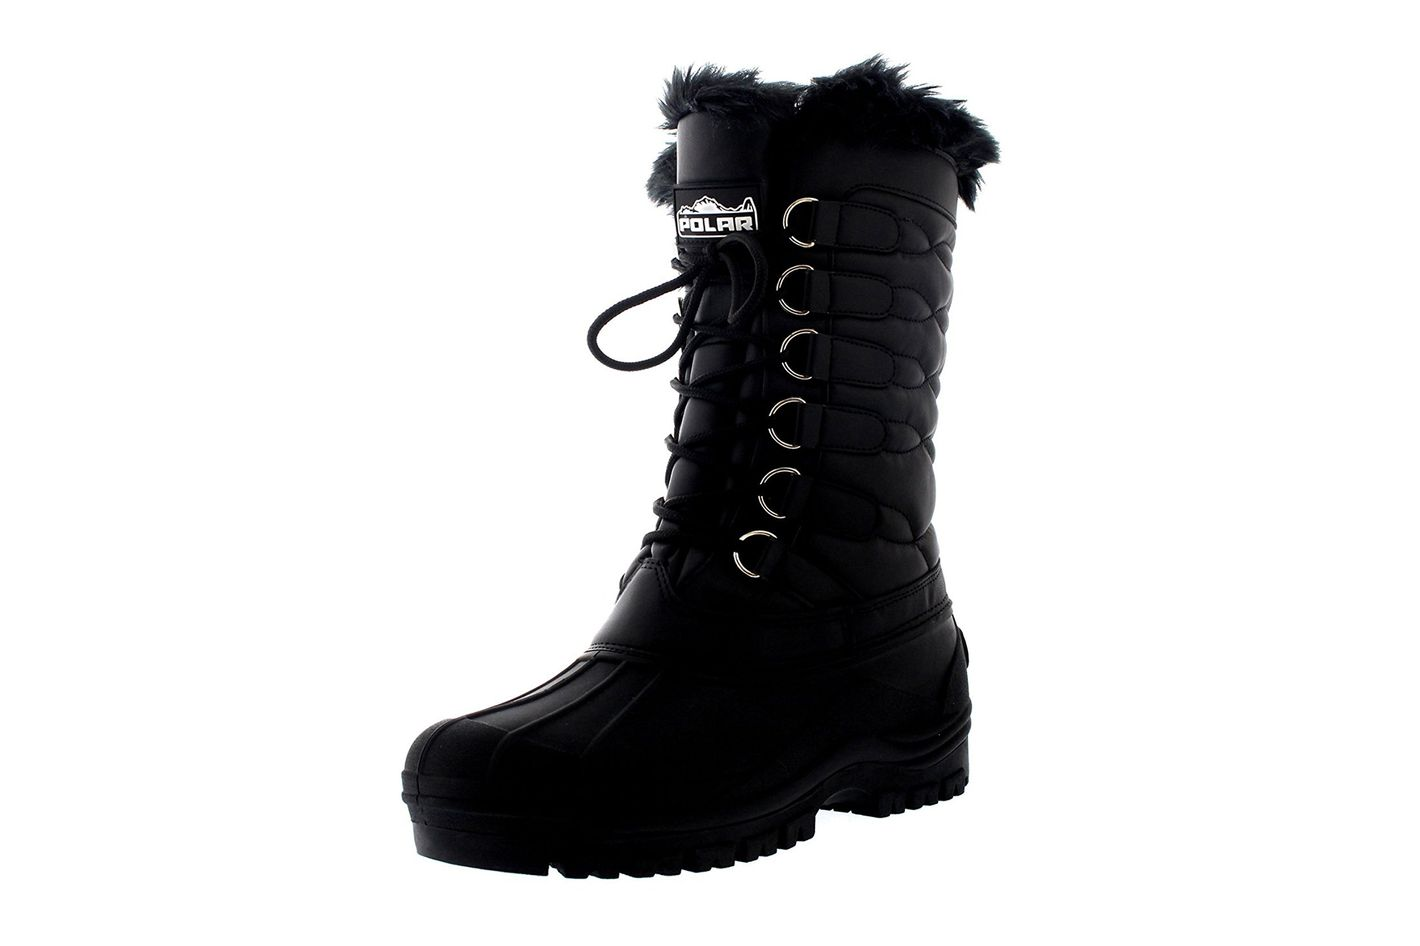 6a9b236f7c81 Polar Products Women s Nylon Cold Weather Duck Lace Boot